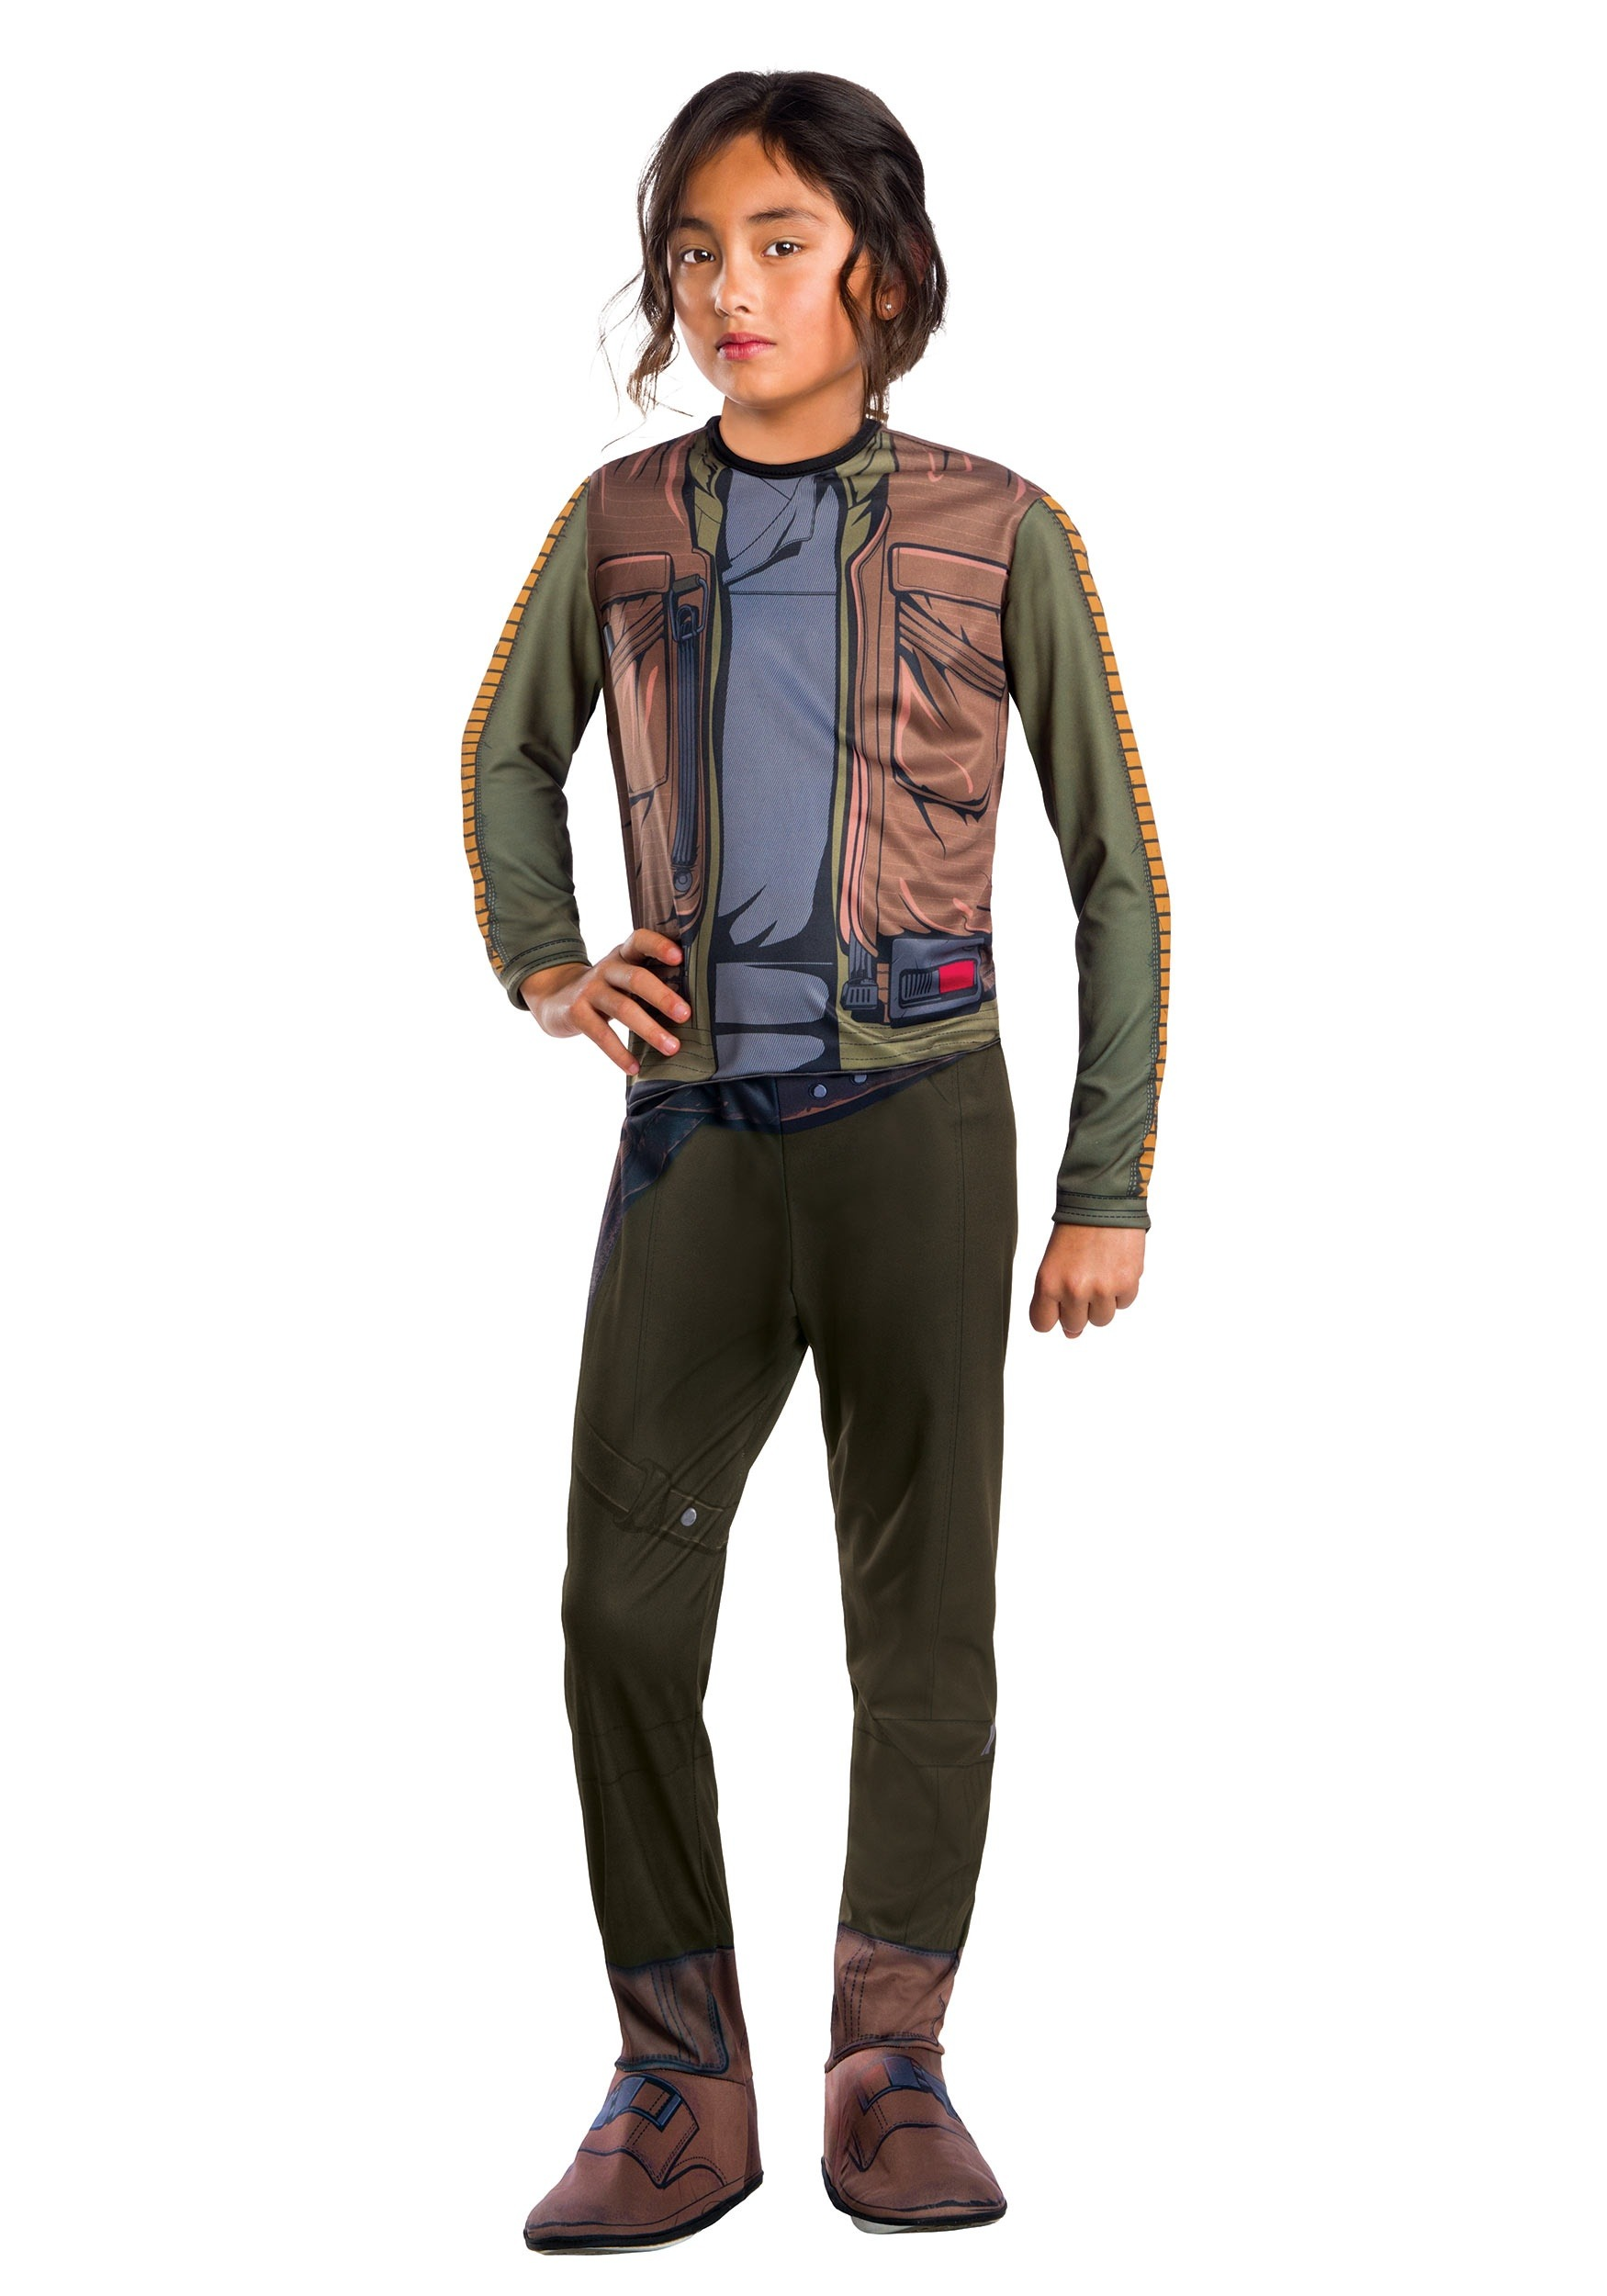 Star Wars Rogue One Costumes For Kids